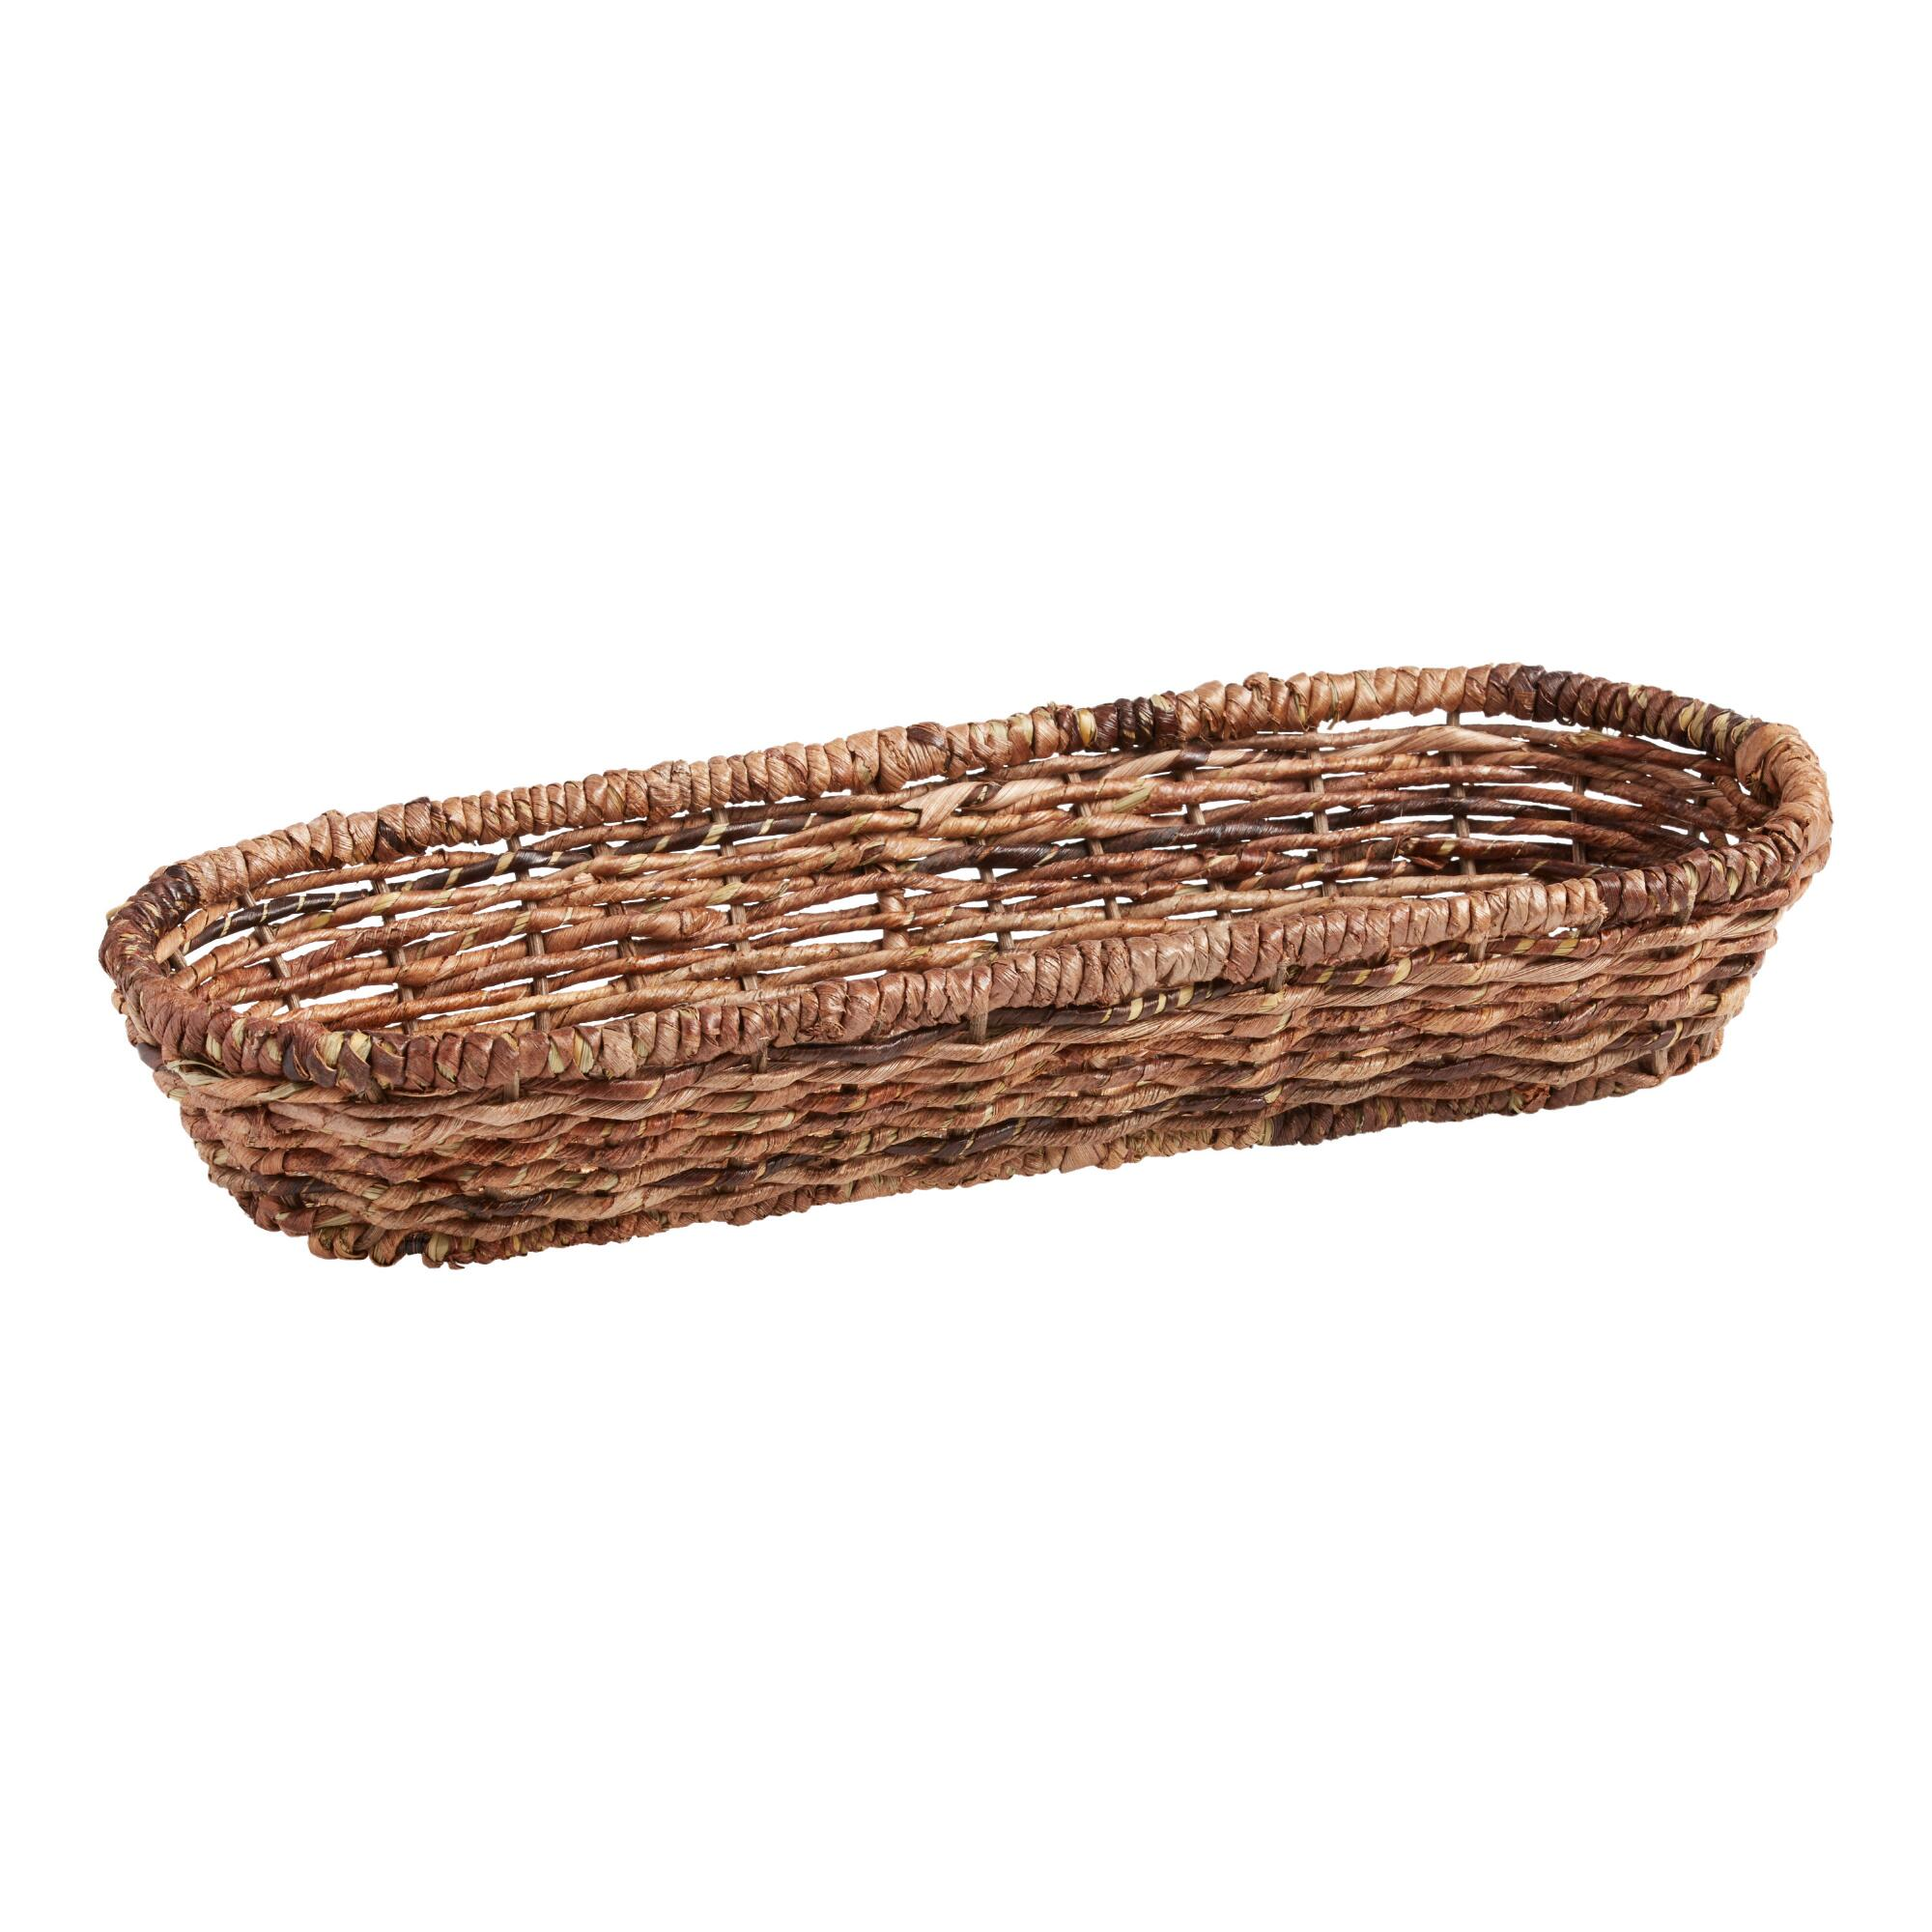 Madras Oval Basket: Brown - Natural Fiber by World Market